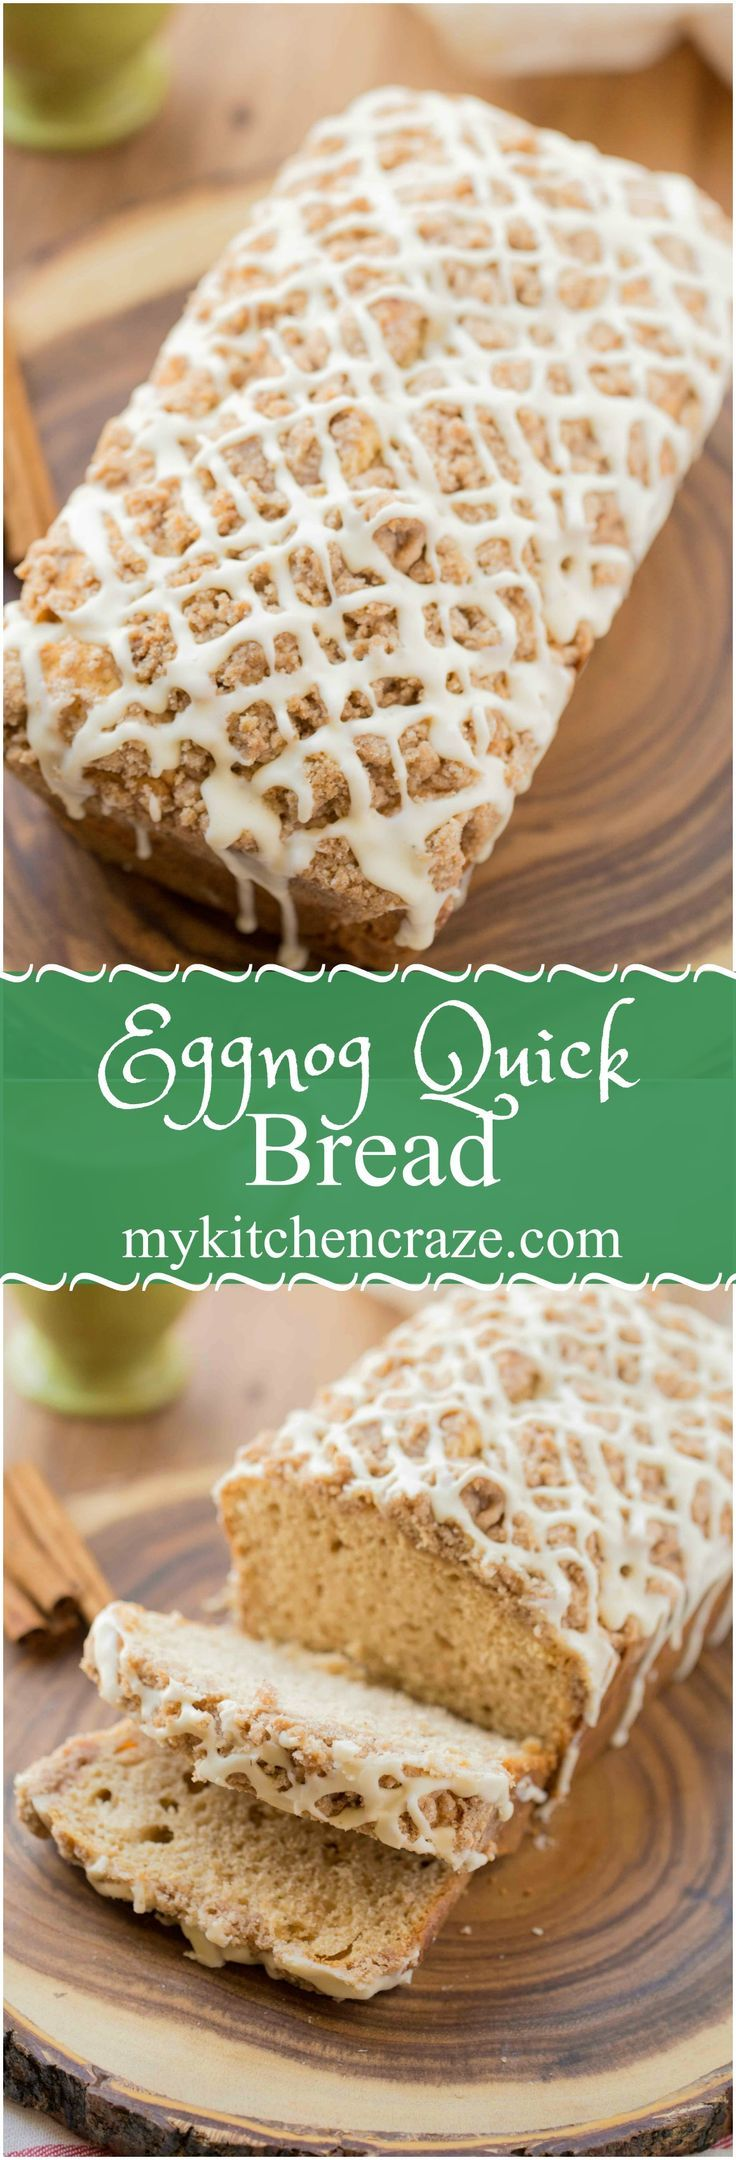 Eggnog Quick Bread should be on your holiday baking list this year! Moist and flavorful, this bread is a winner this season!